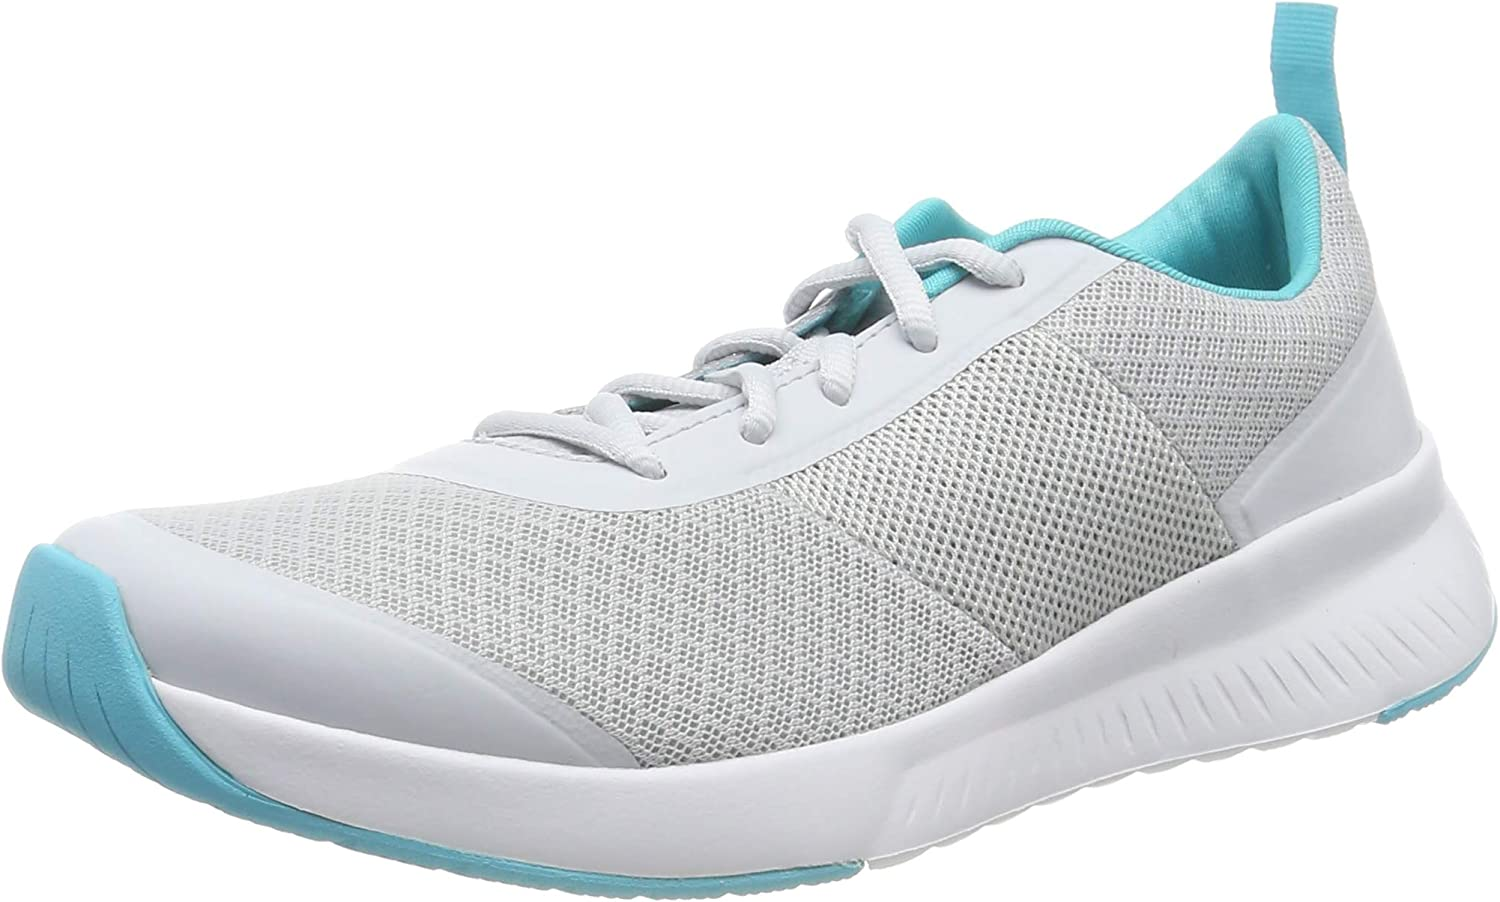 Aura Trainer Fitness Shoes